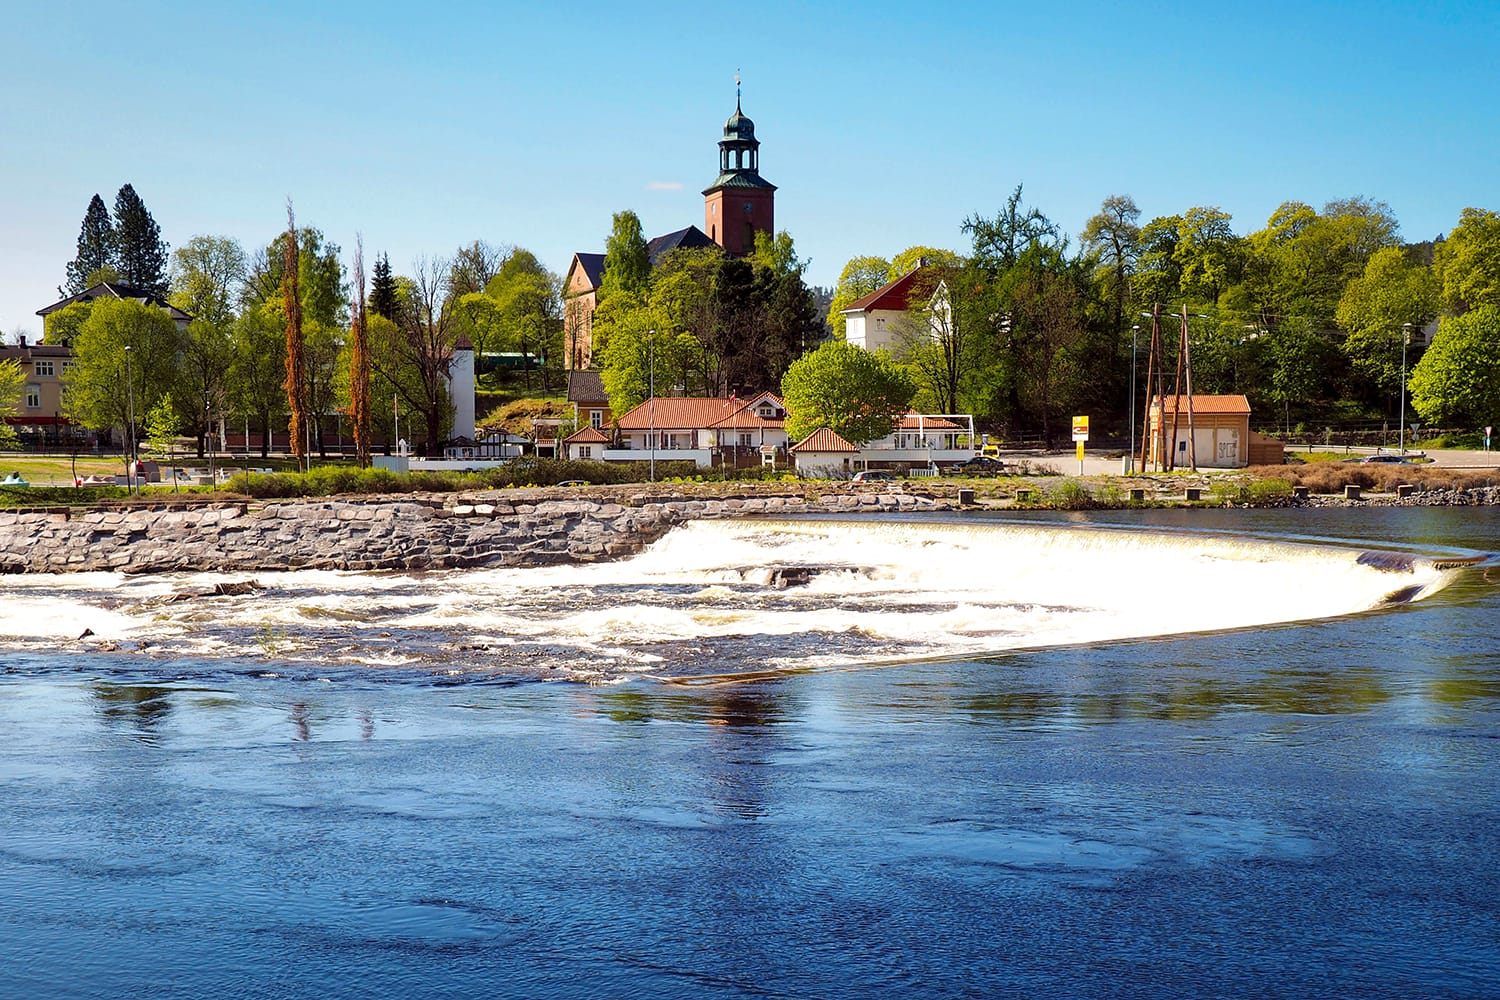 View on the Kongsberg river in Norway